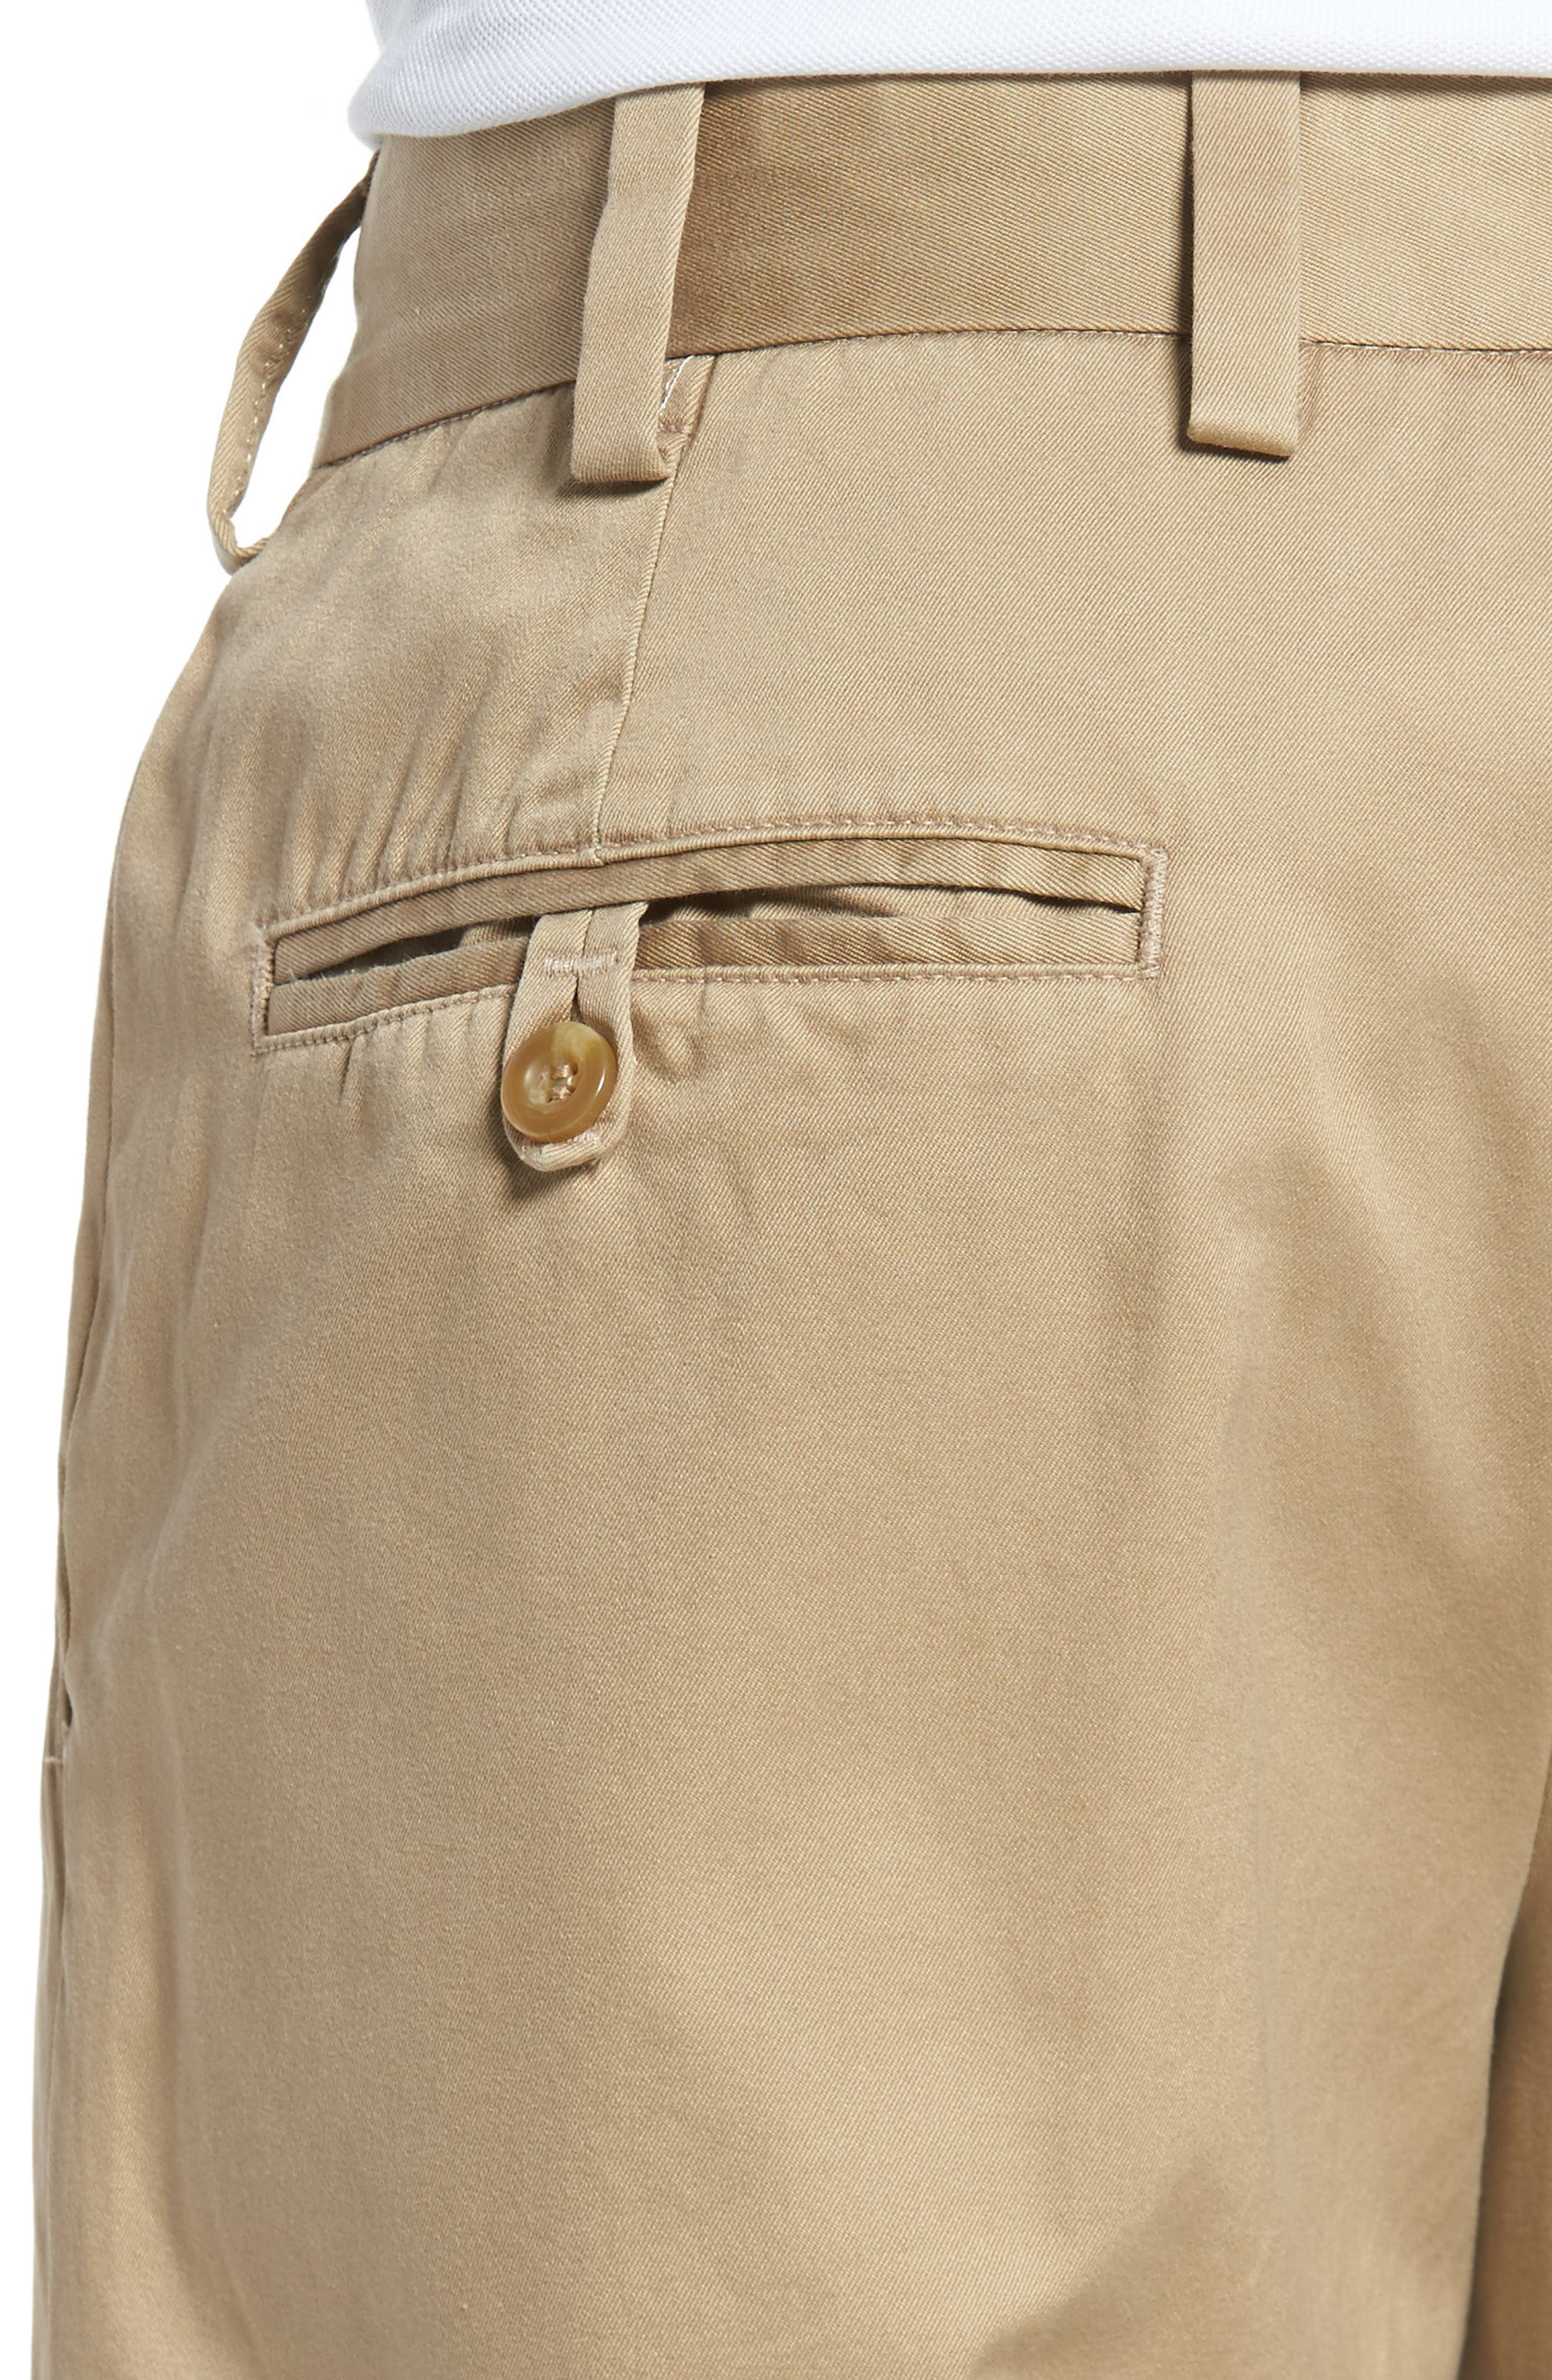 Straight Fit Chamois Cloth Pants,                             Alternate thumbnail 4, color,                             Camel